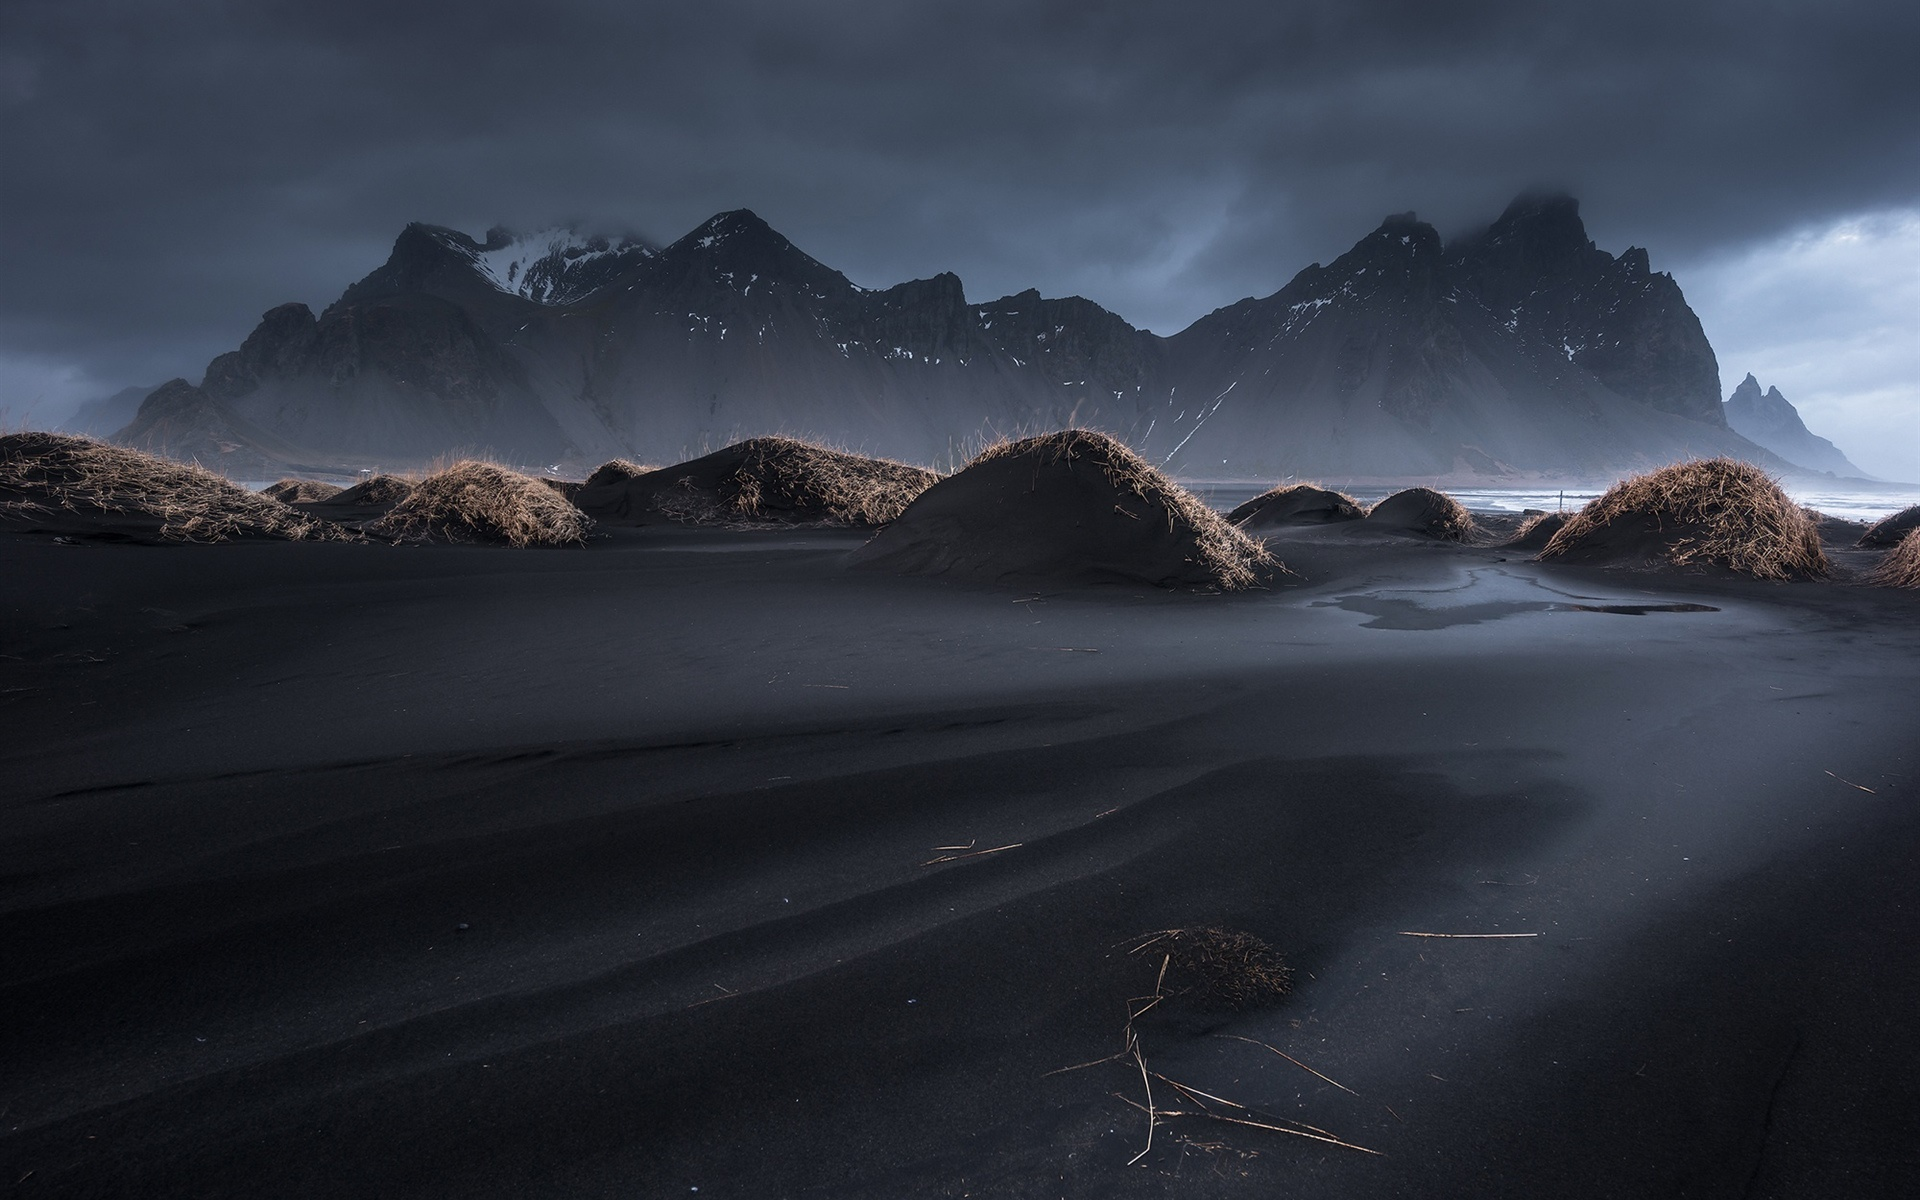 Iceland, Vestrahorn, black sand, dusk, grass, mountains, clouds 1920x1200 wallpaper